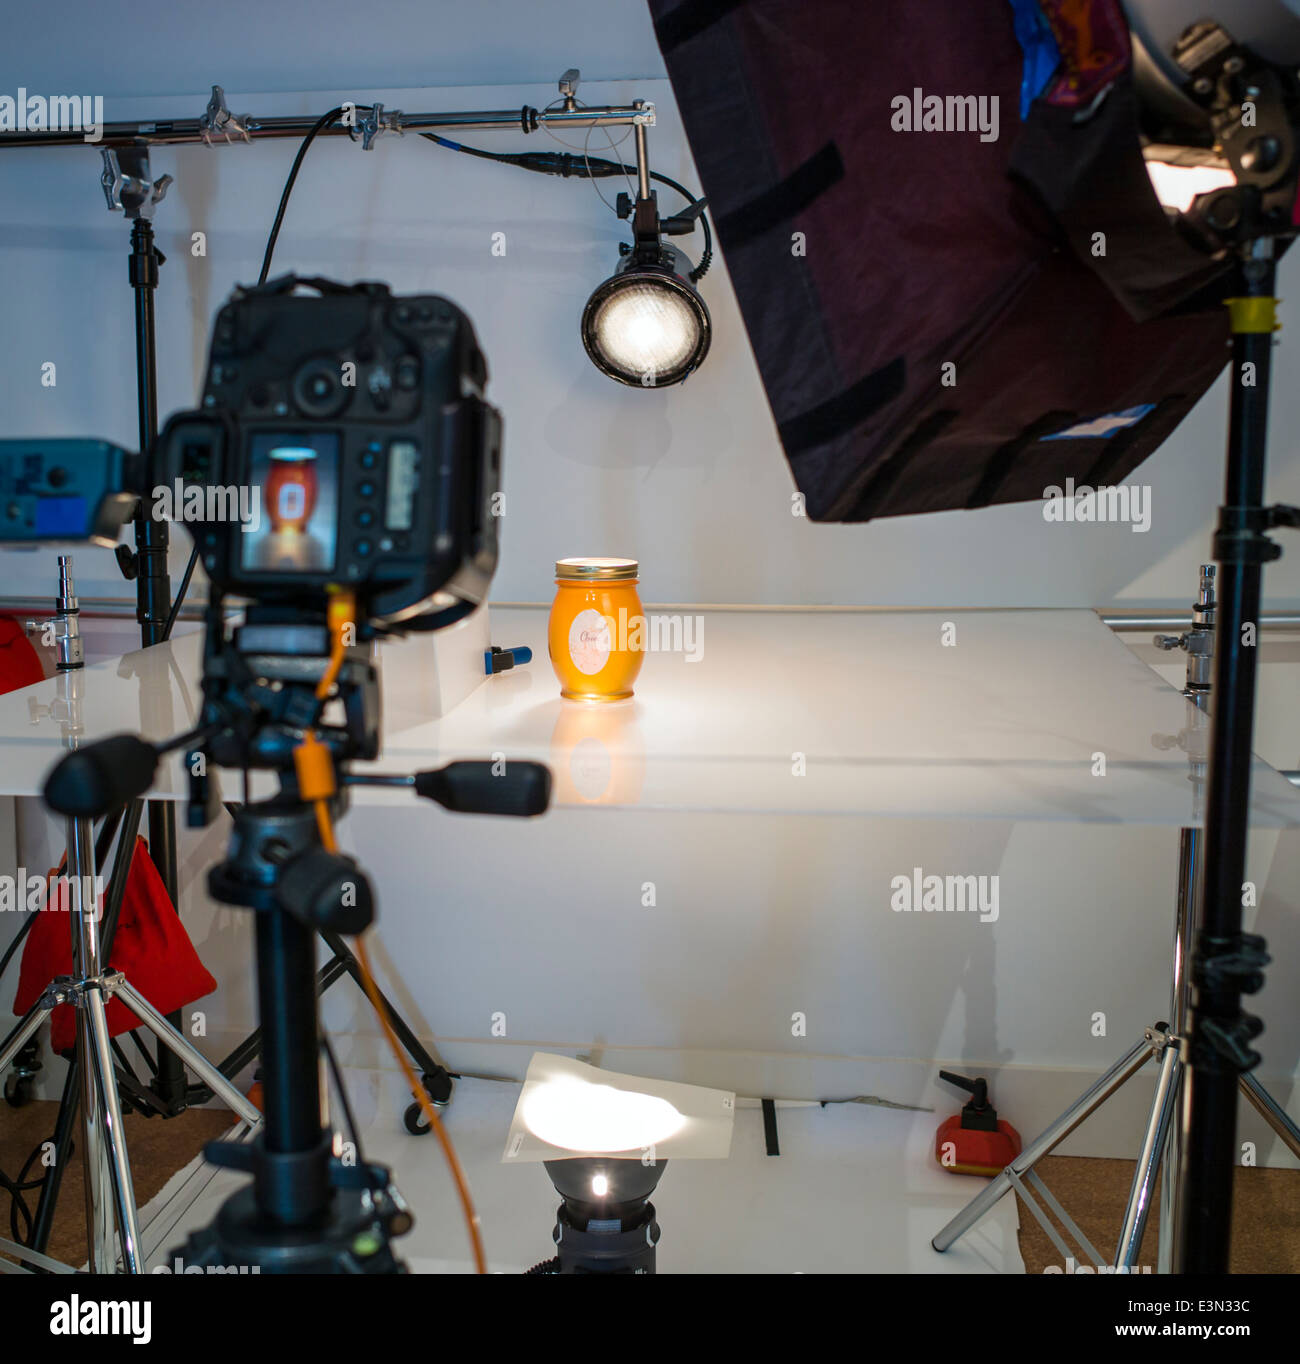 Commercial photography set including lighting background and grip commercial photography set including lighting background and grip gear aloadofball Images